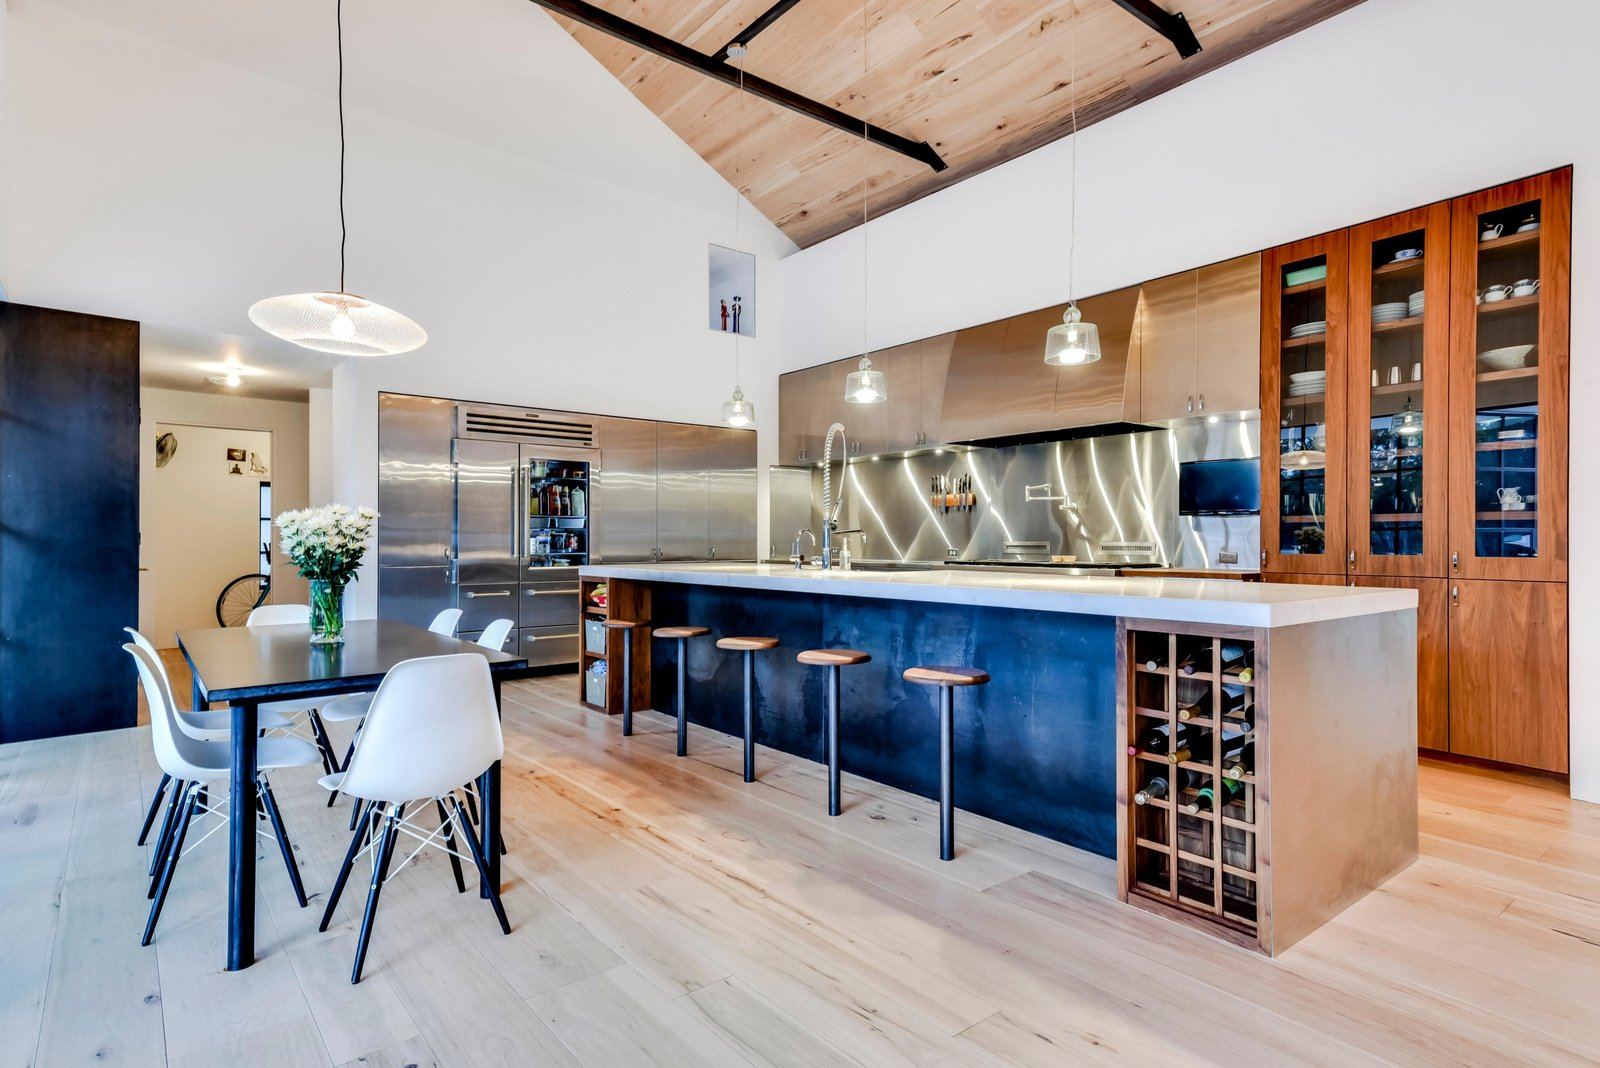 Kitchen, Medium Hardwood, Range Hood, Wall Oven, Drop In, Metal, Metal, Range, Wood, Pendant, Refrigerator, and Beverage Center The kitchen and dining area from the other angle.  Best Kitchen Metal Range Photos from Own This Alluring Sculptural Abode in Austin For $3.1M